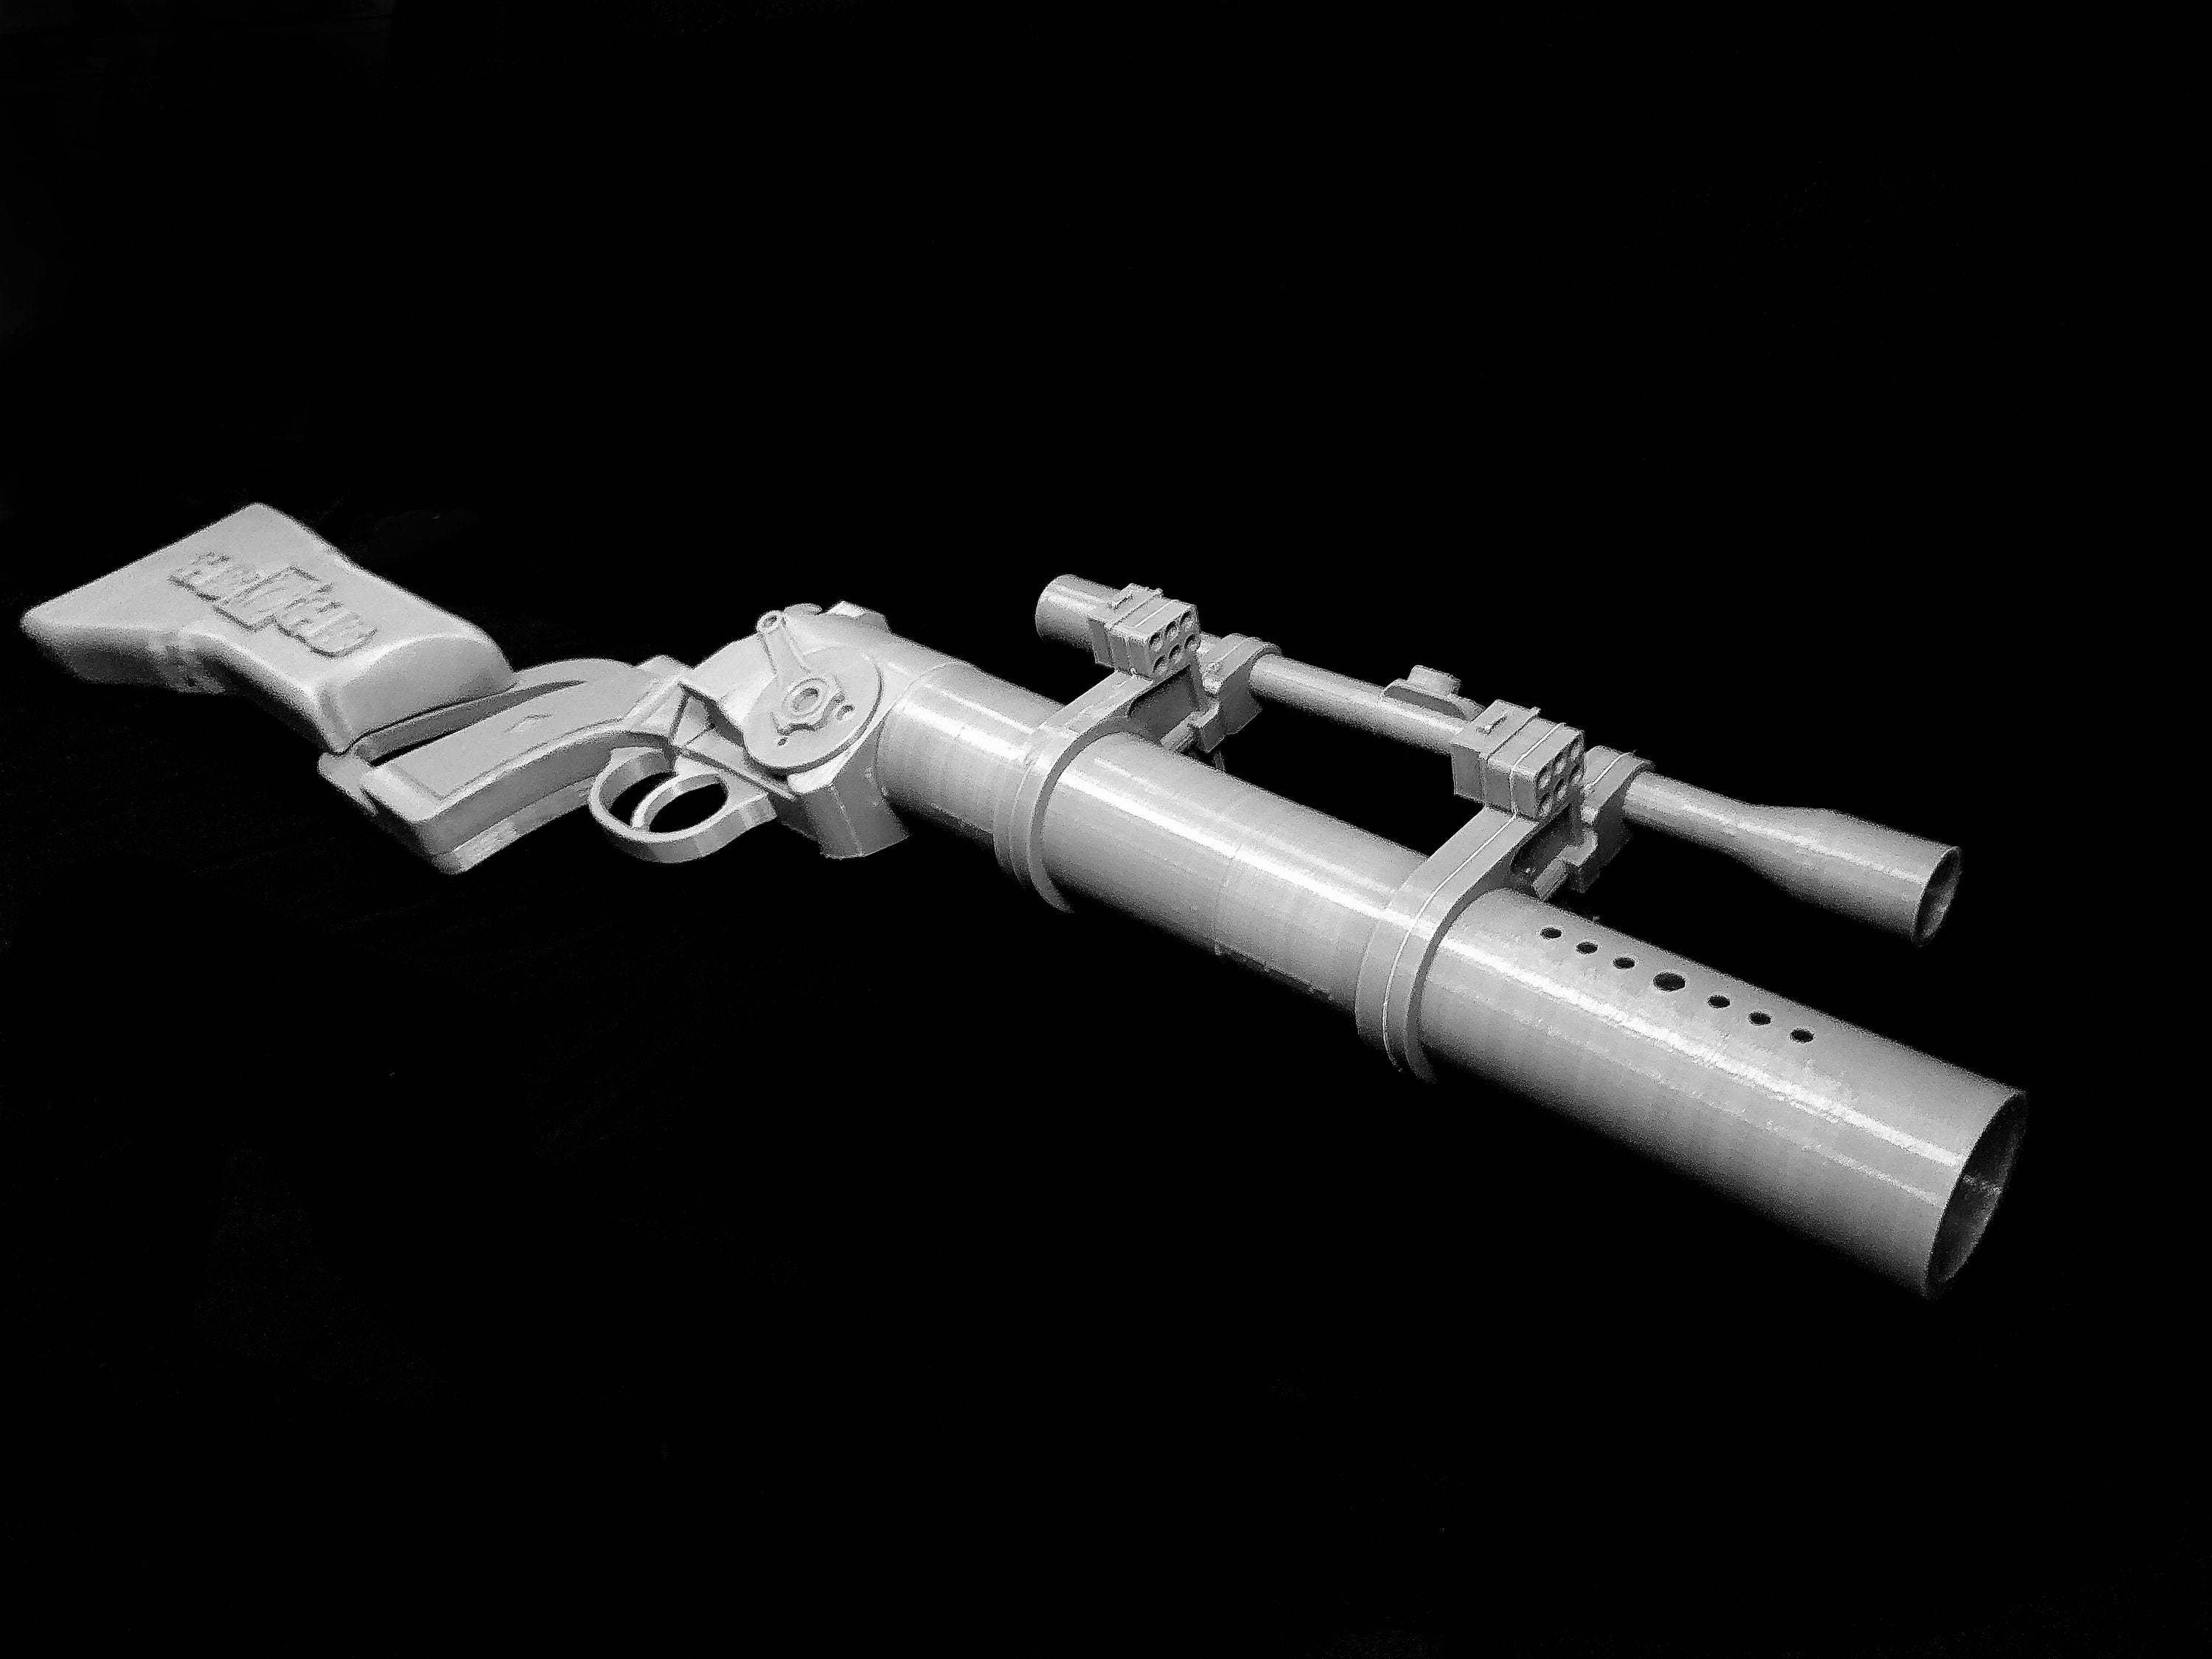 EE-3 ESB Carbine Blaster Rifle, Boba Fett - Star Wars Replica Prop - 3D Printed Kit